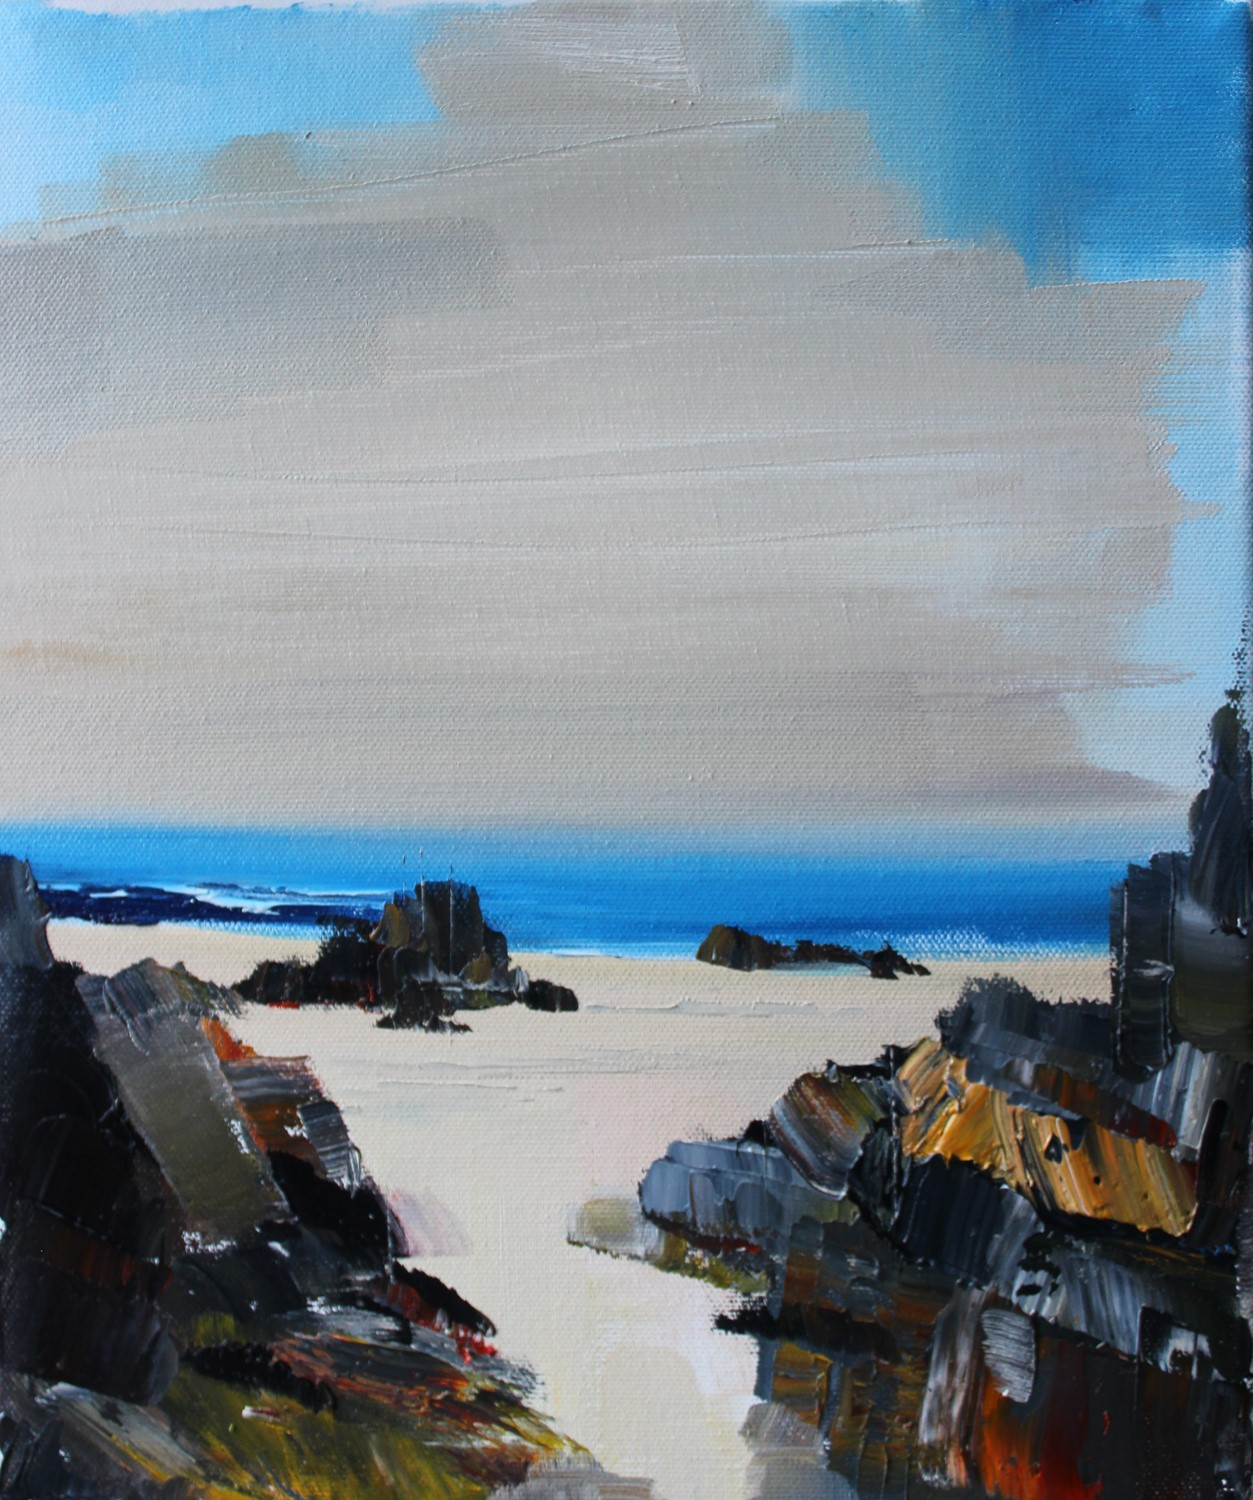 'Blue Ocean View' by artist Rosanne Barr